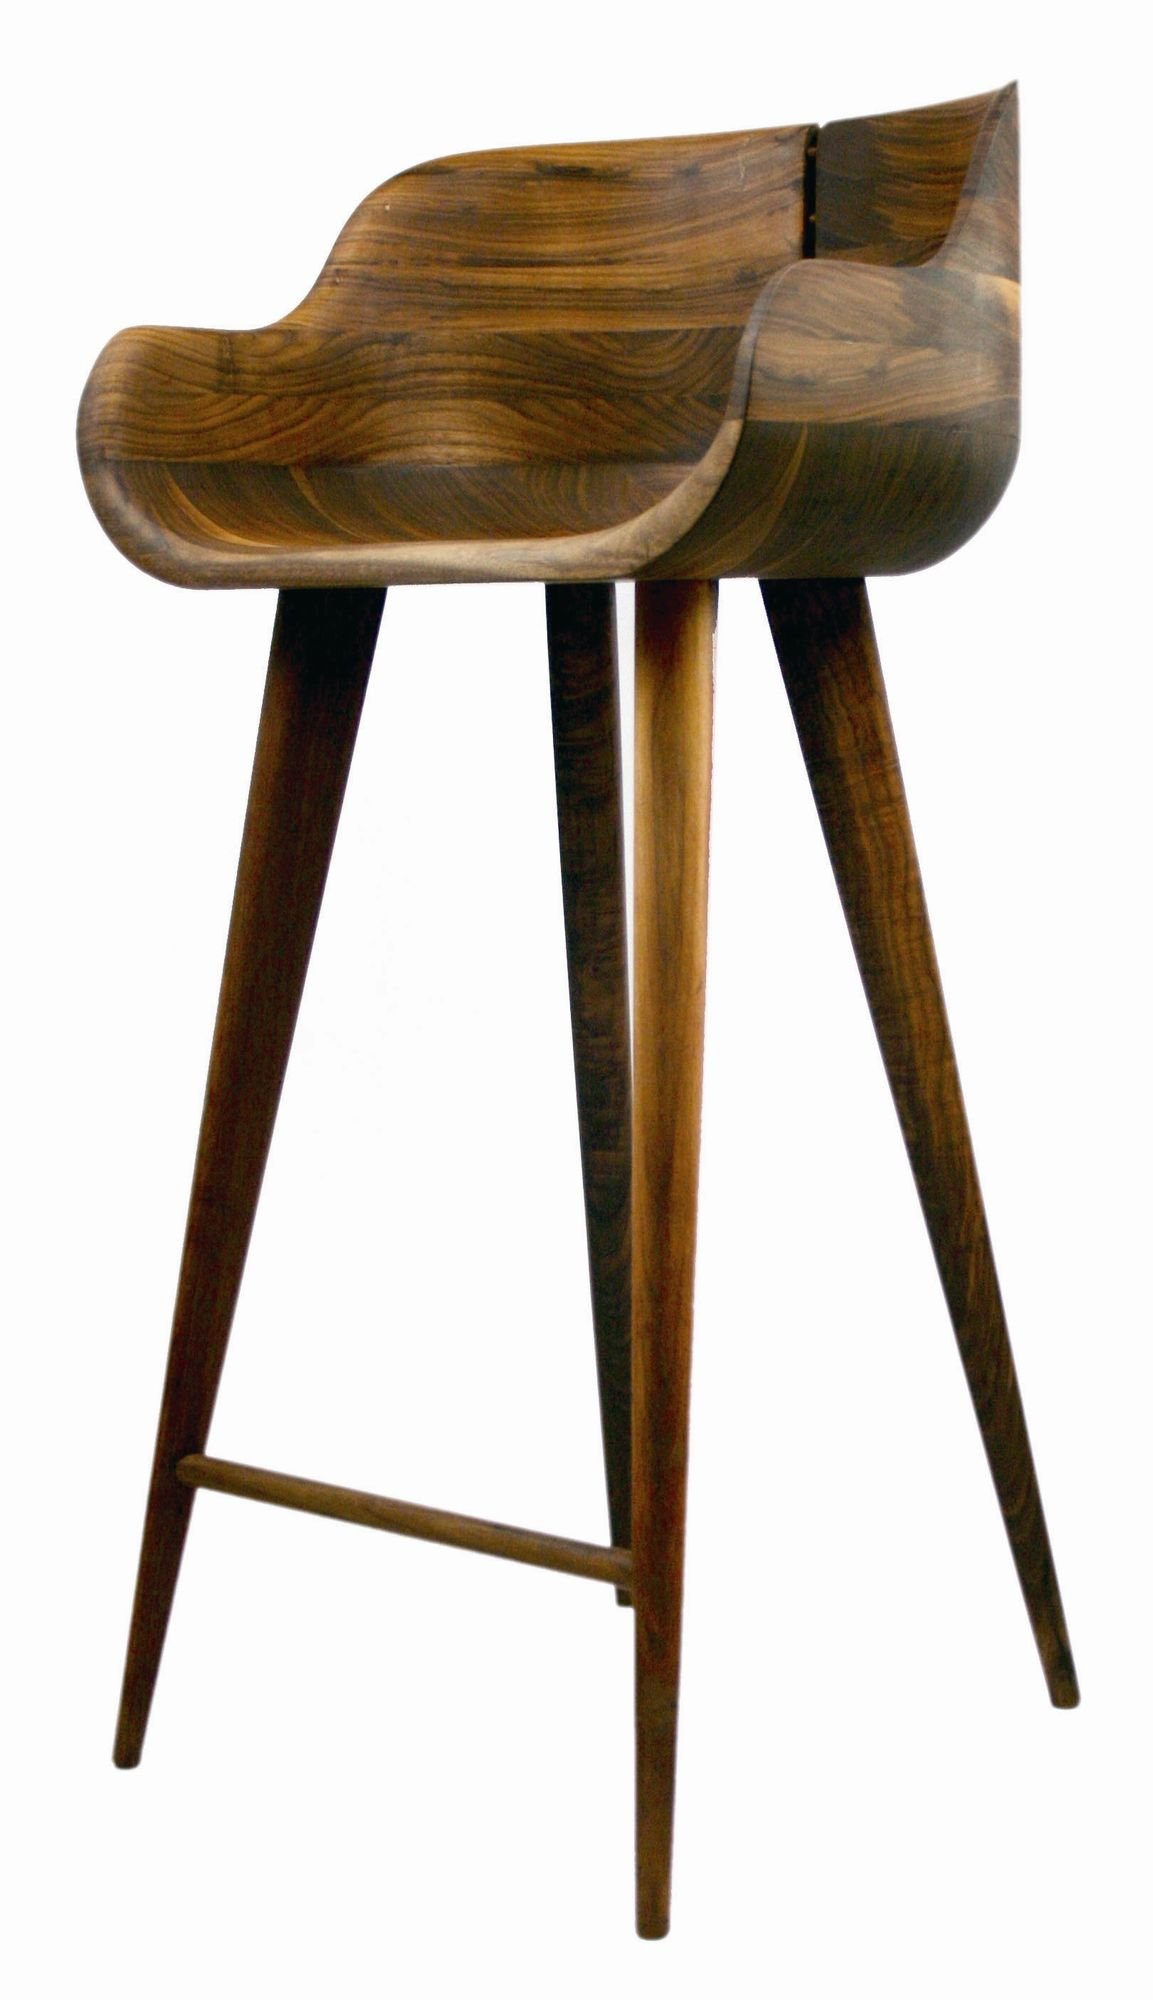 Walnut counter stool - just what i need for my bar seeing as all my bar  sc 1 st  Pinterest & Walnut counter stool - just what i need for my bar seeing as all ... islam-shia.org